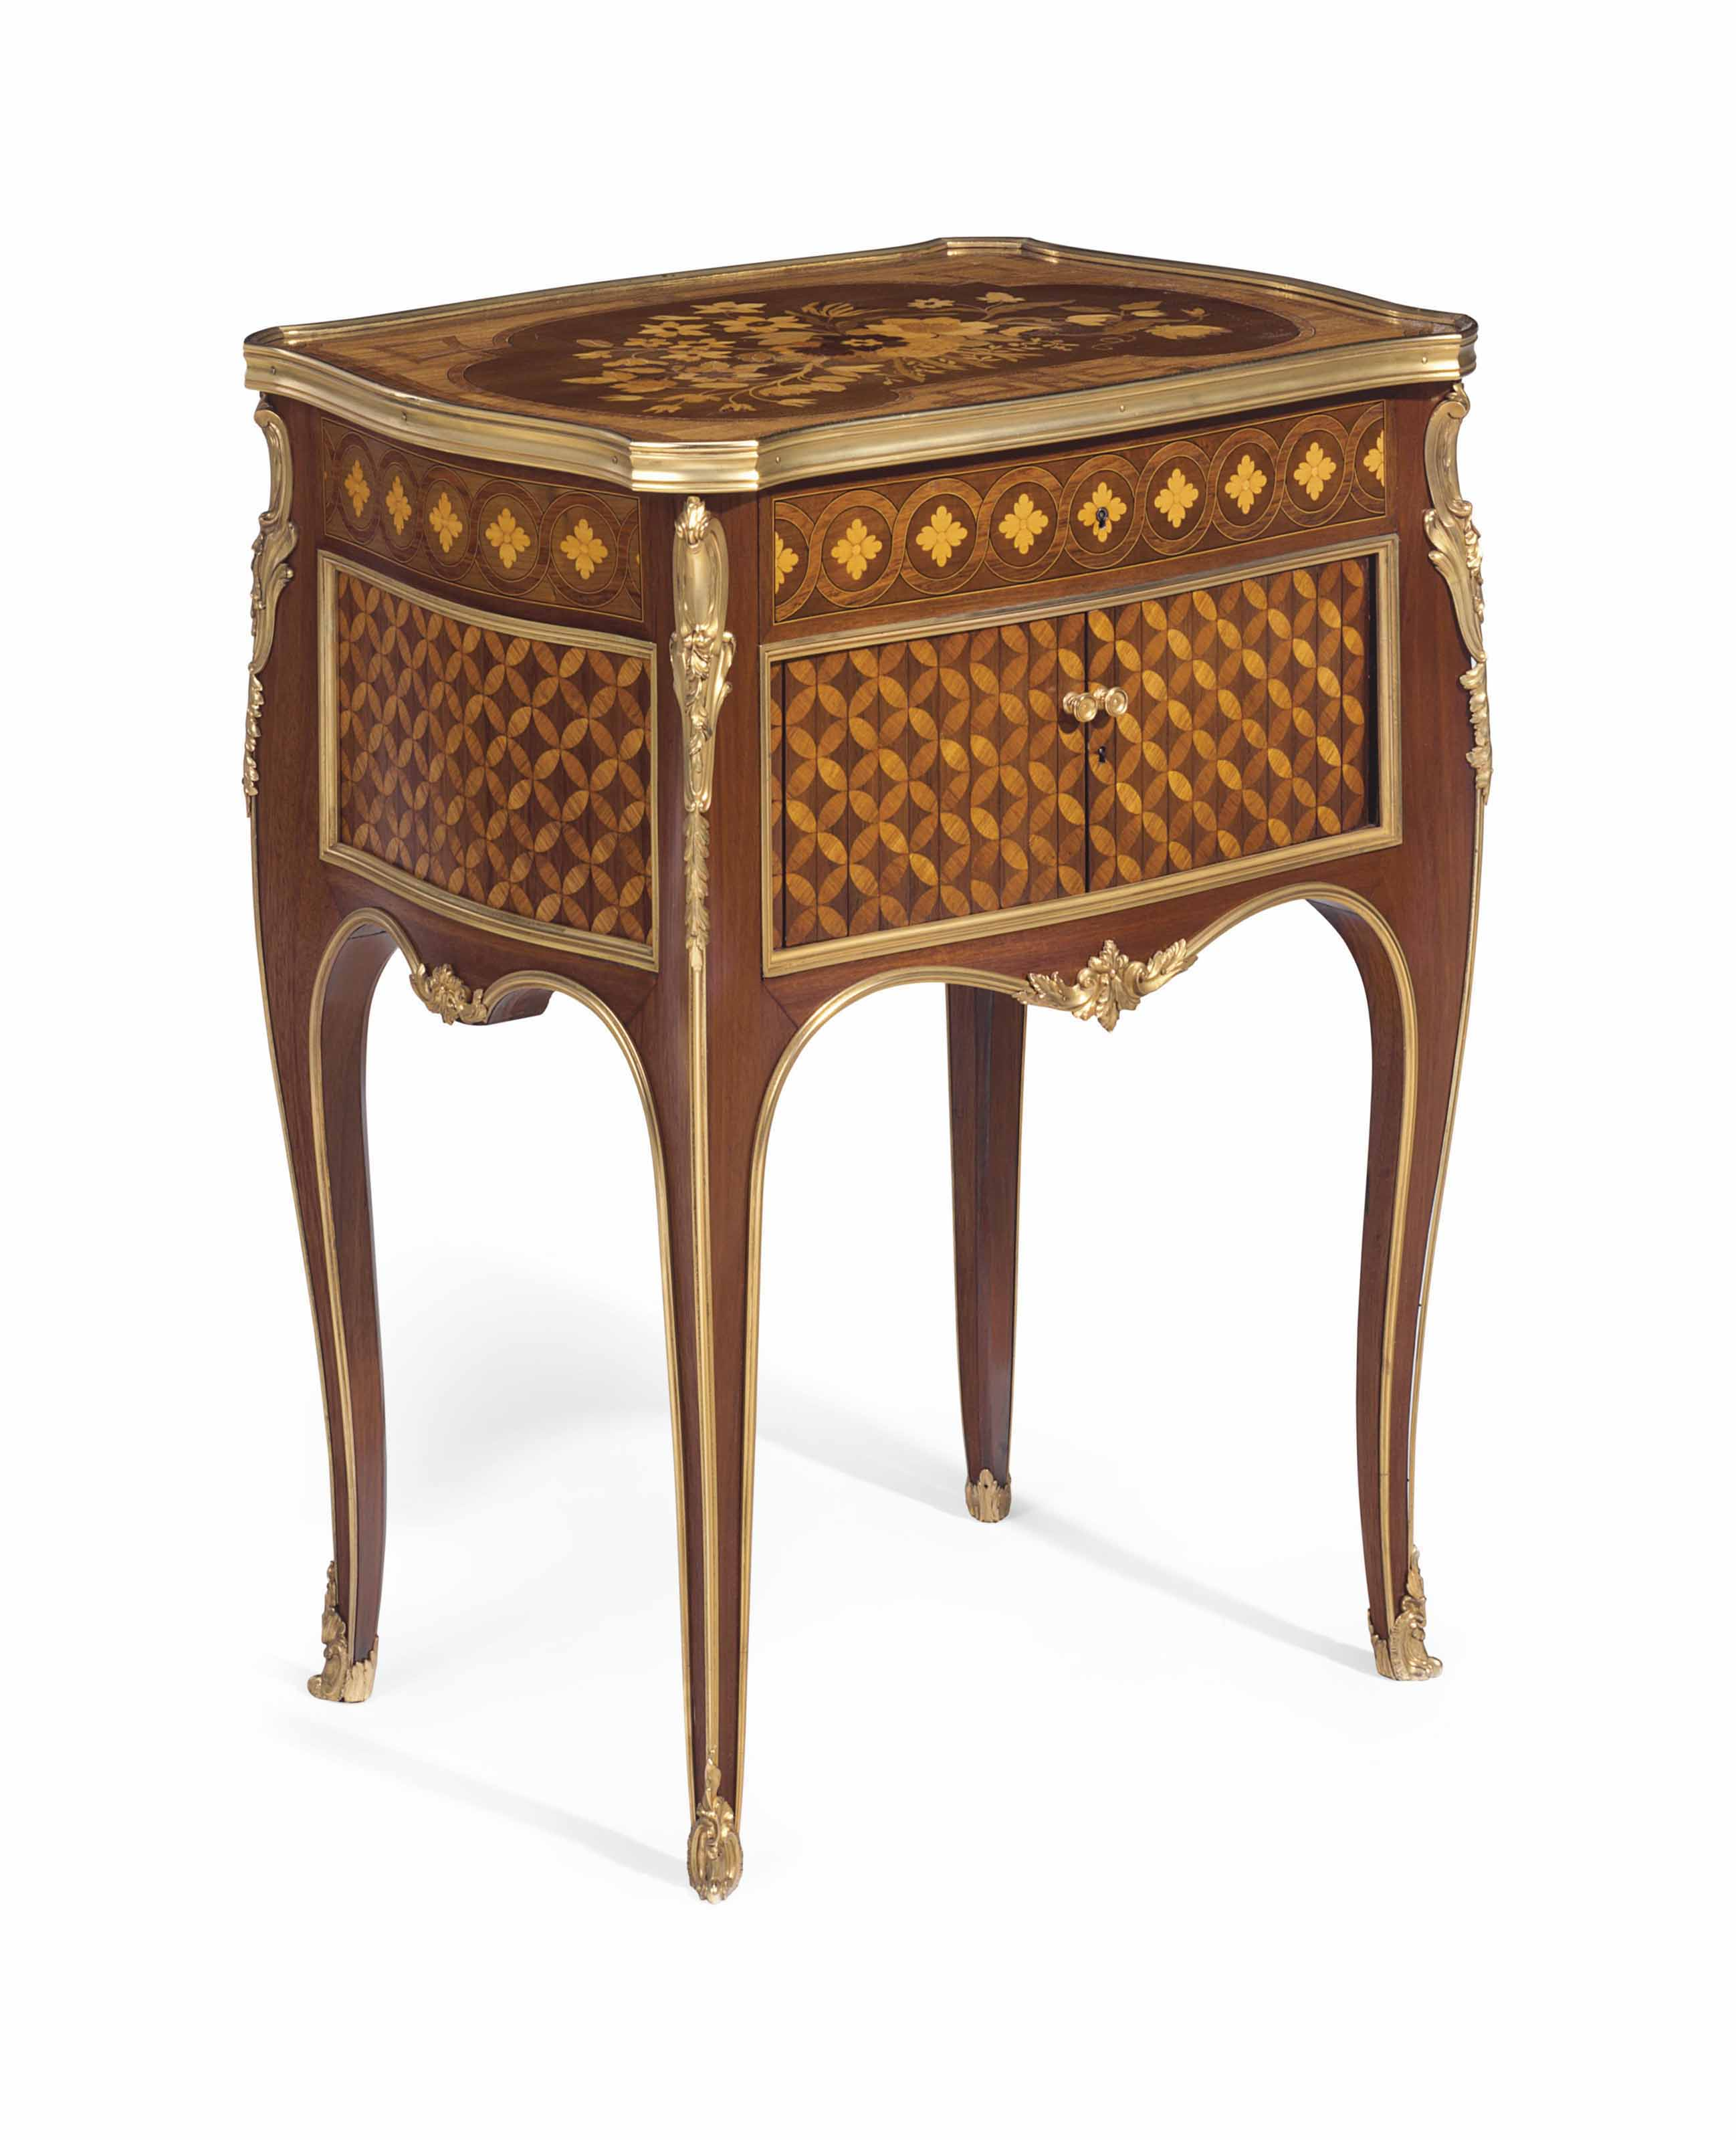 Table De Nuit New York A French Ormolu Mounted Mahogany Tulipwood Sycamore